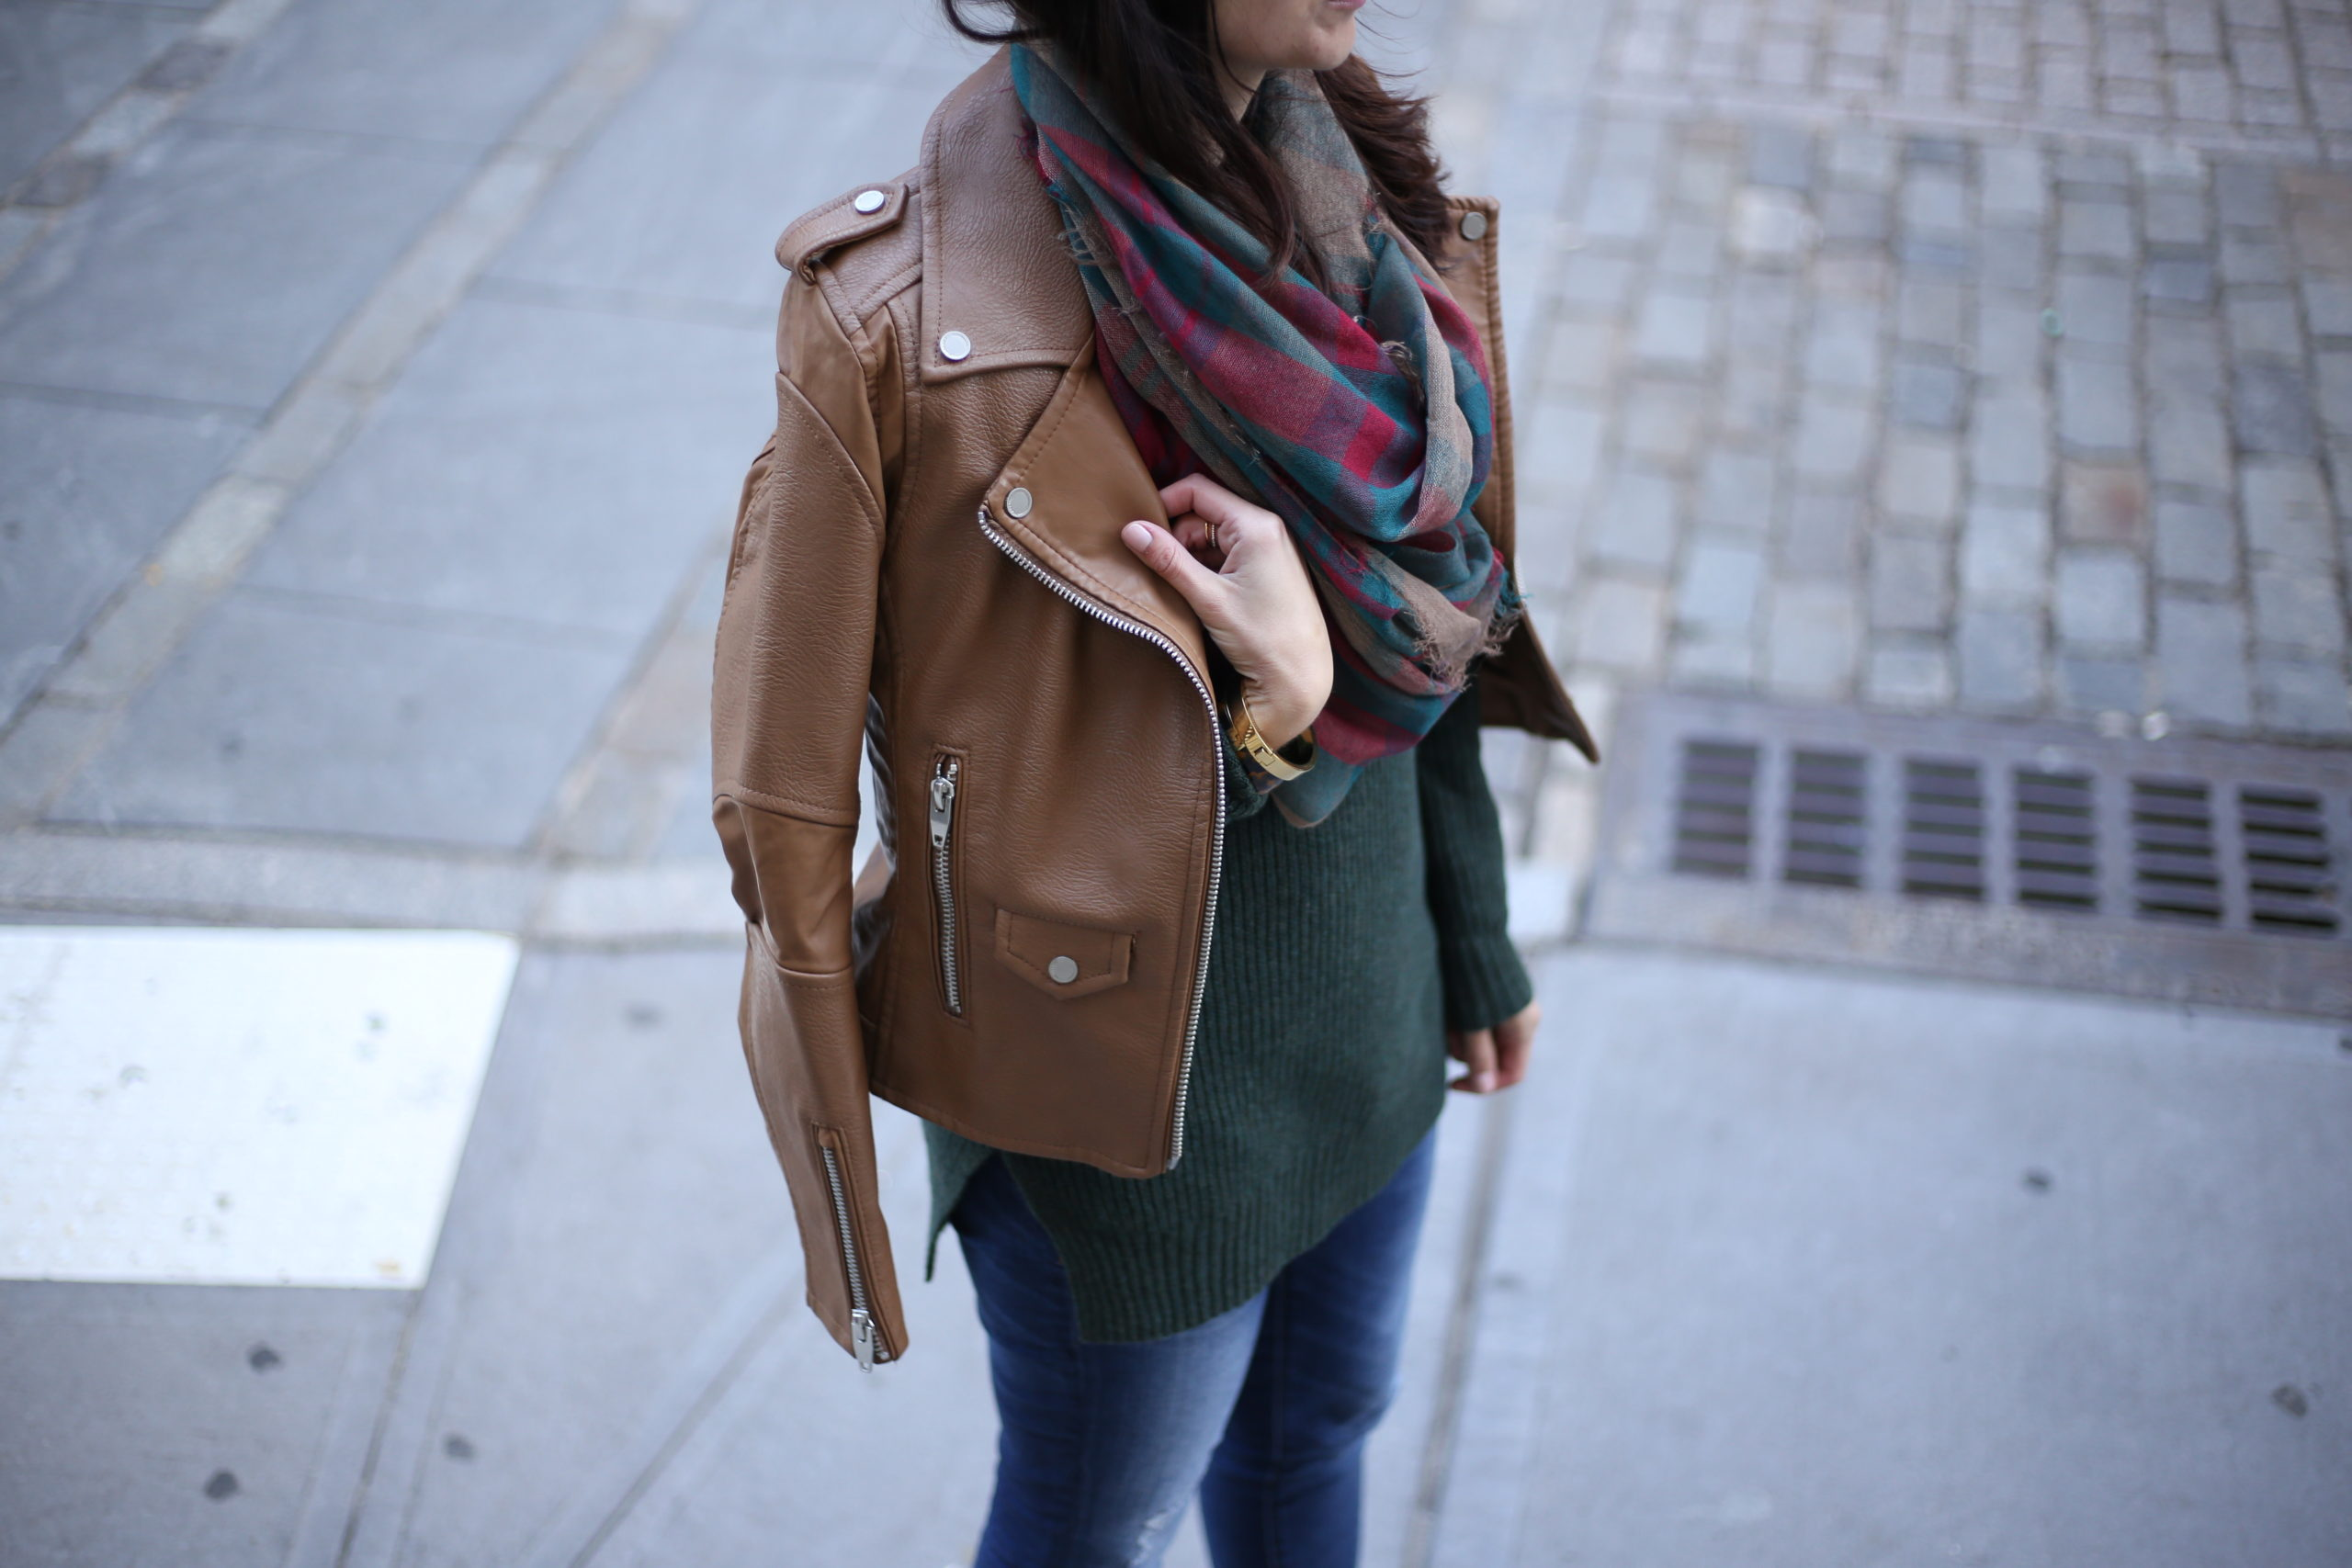 Casual Fall Look: Mock Neck Sweater & Suede Booties